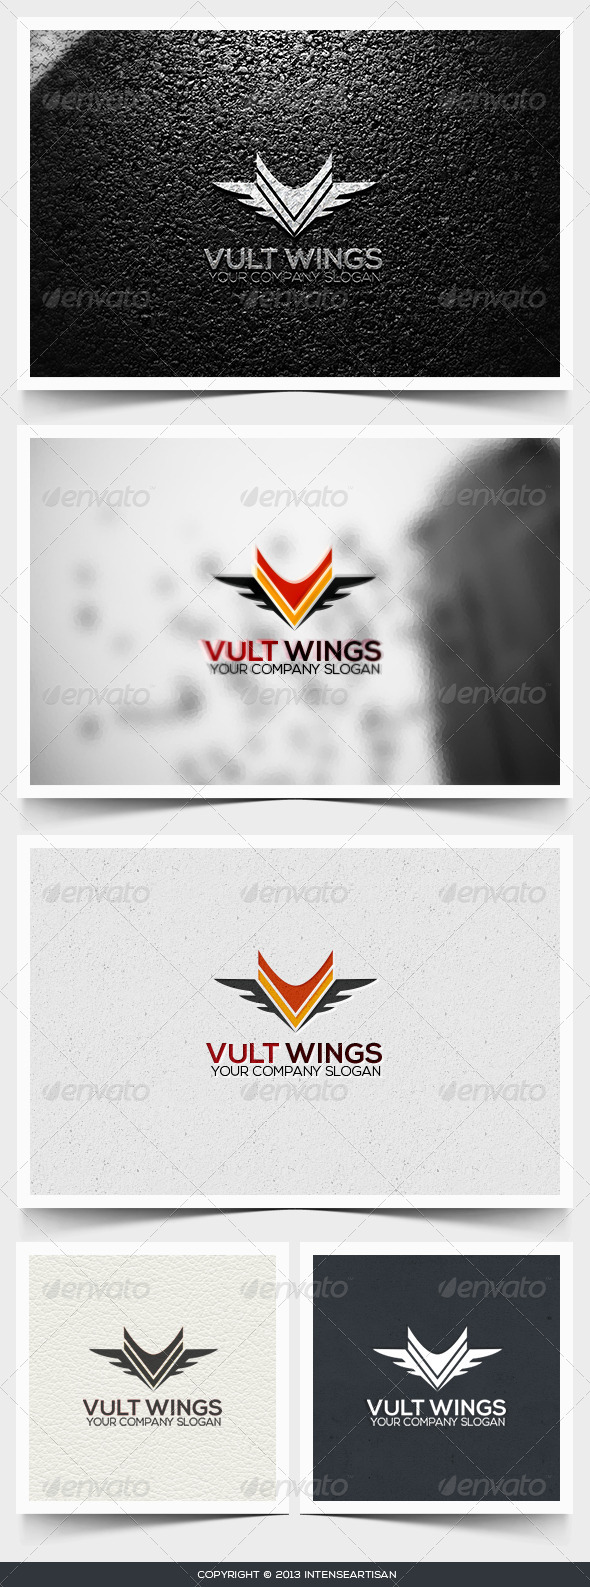 Vult Wings Logo Template - Objects Logo Templates